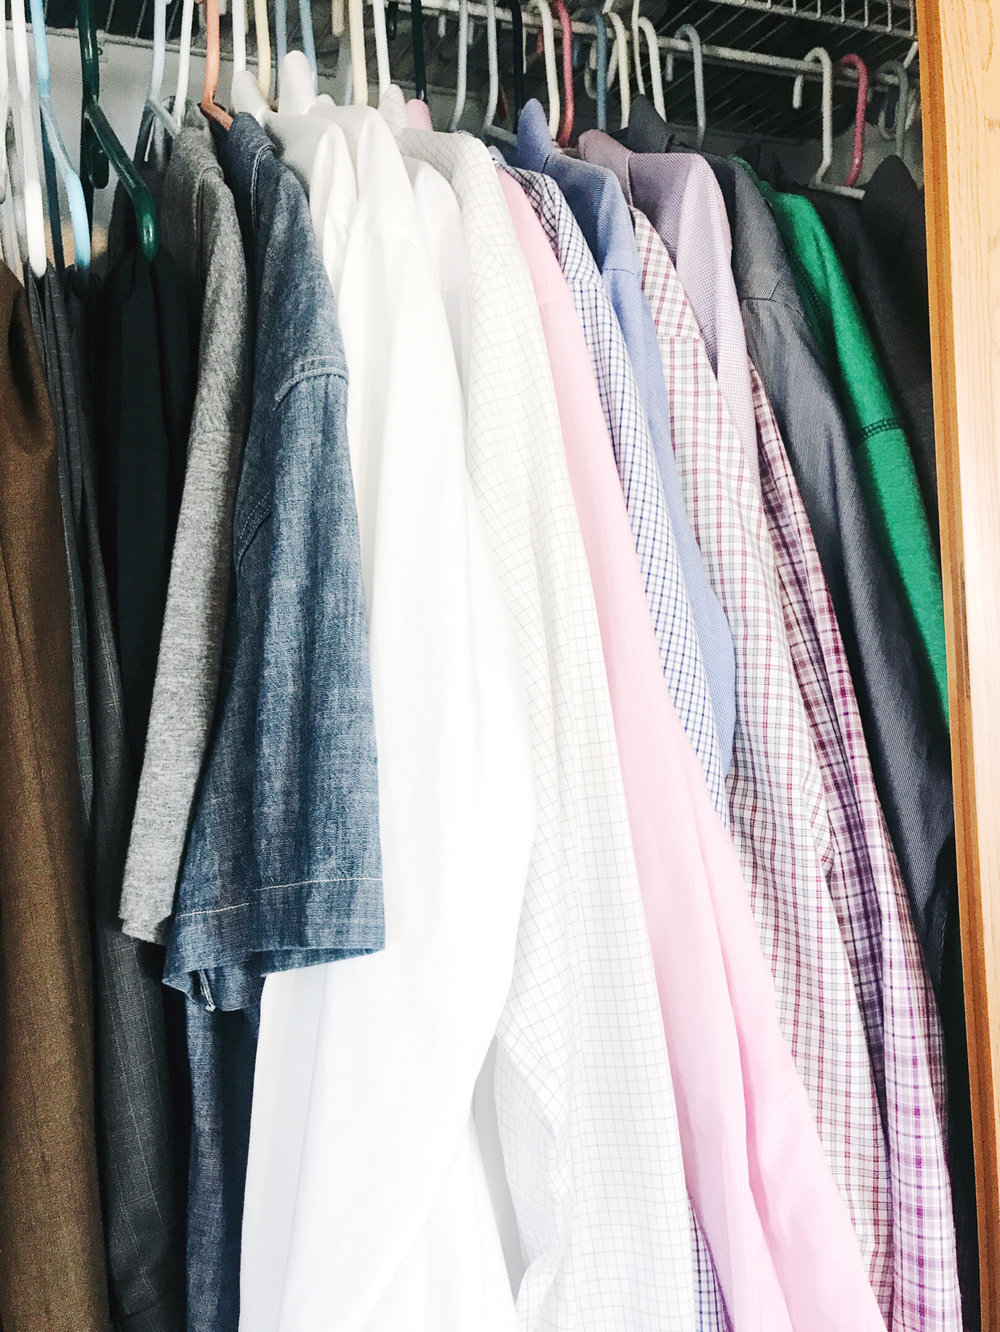 Get tips for making over your closet at hprallandco.com | H.Prall & Co. Interior Decorating, Des Moines, IA